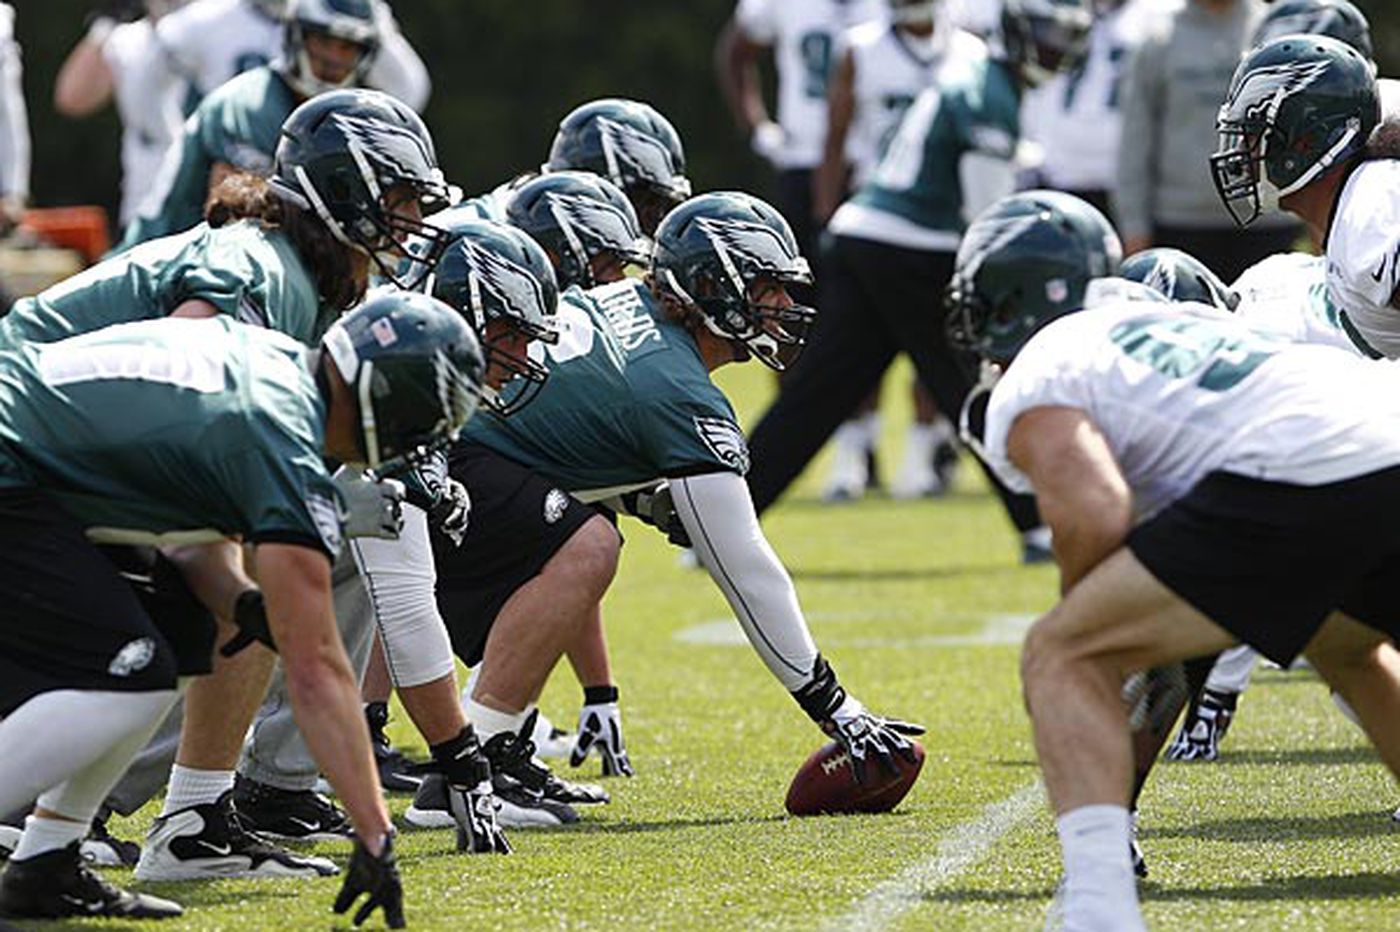 Cole, Graham try to adapt to new Eagles defense